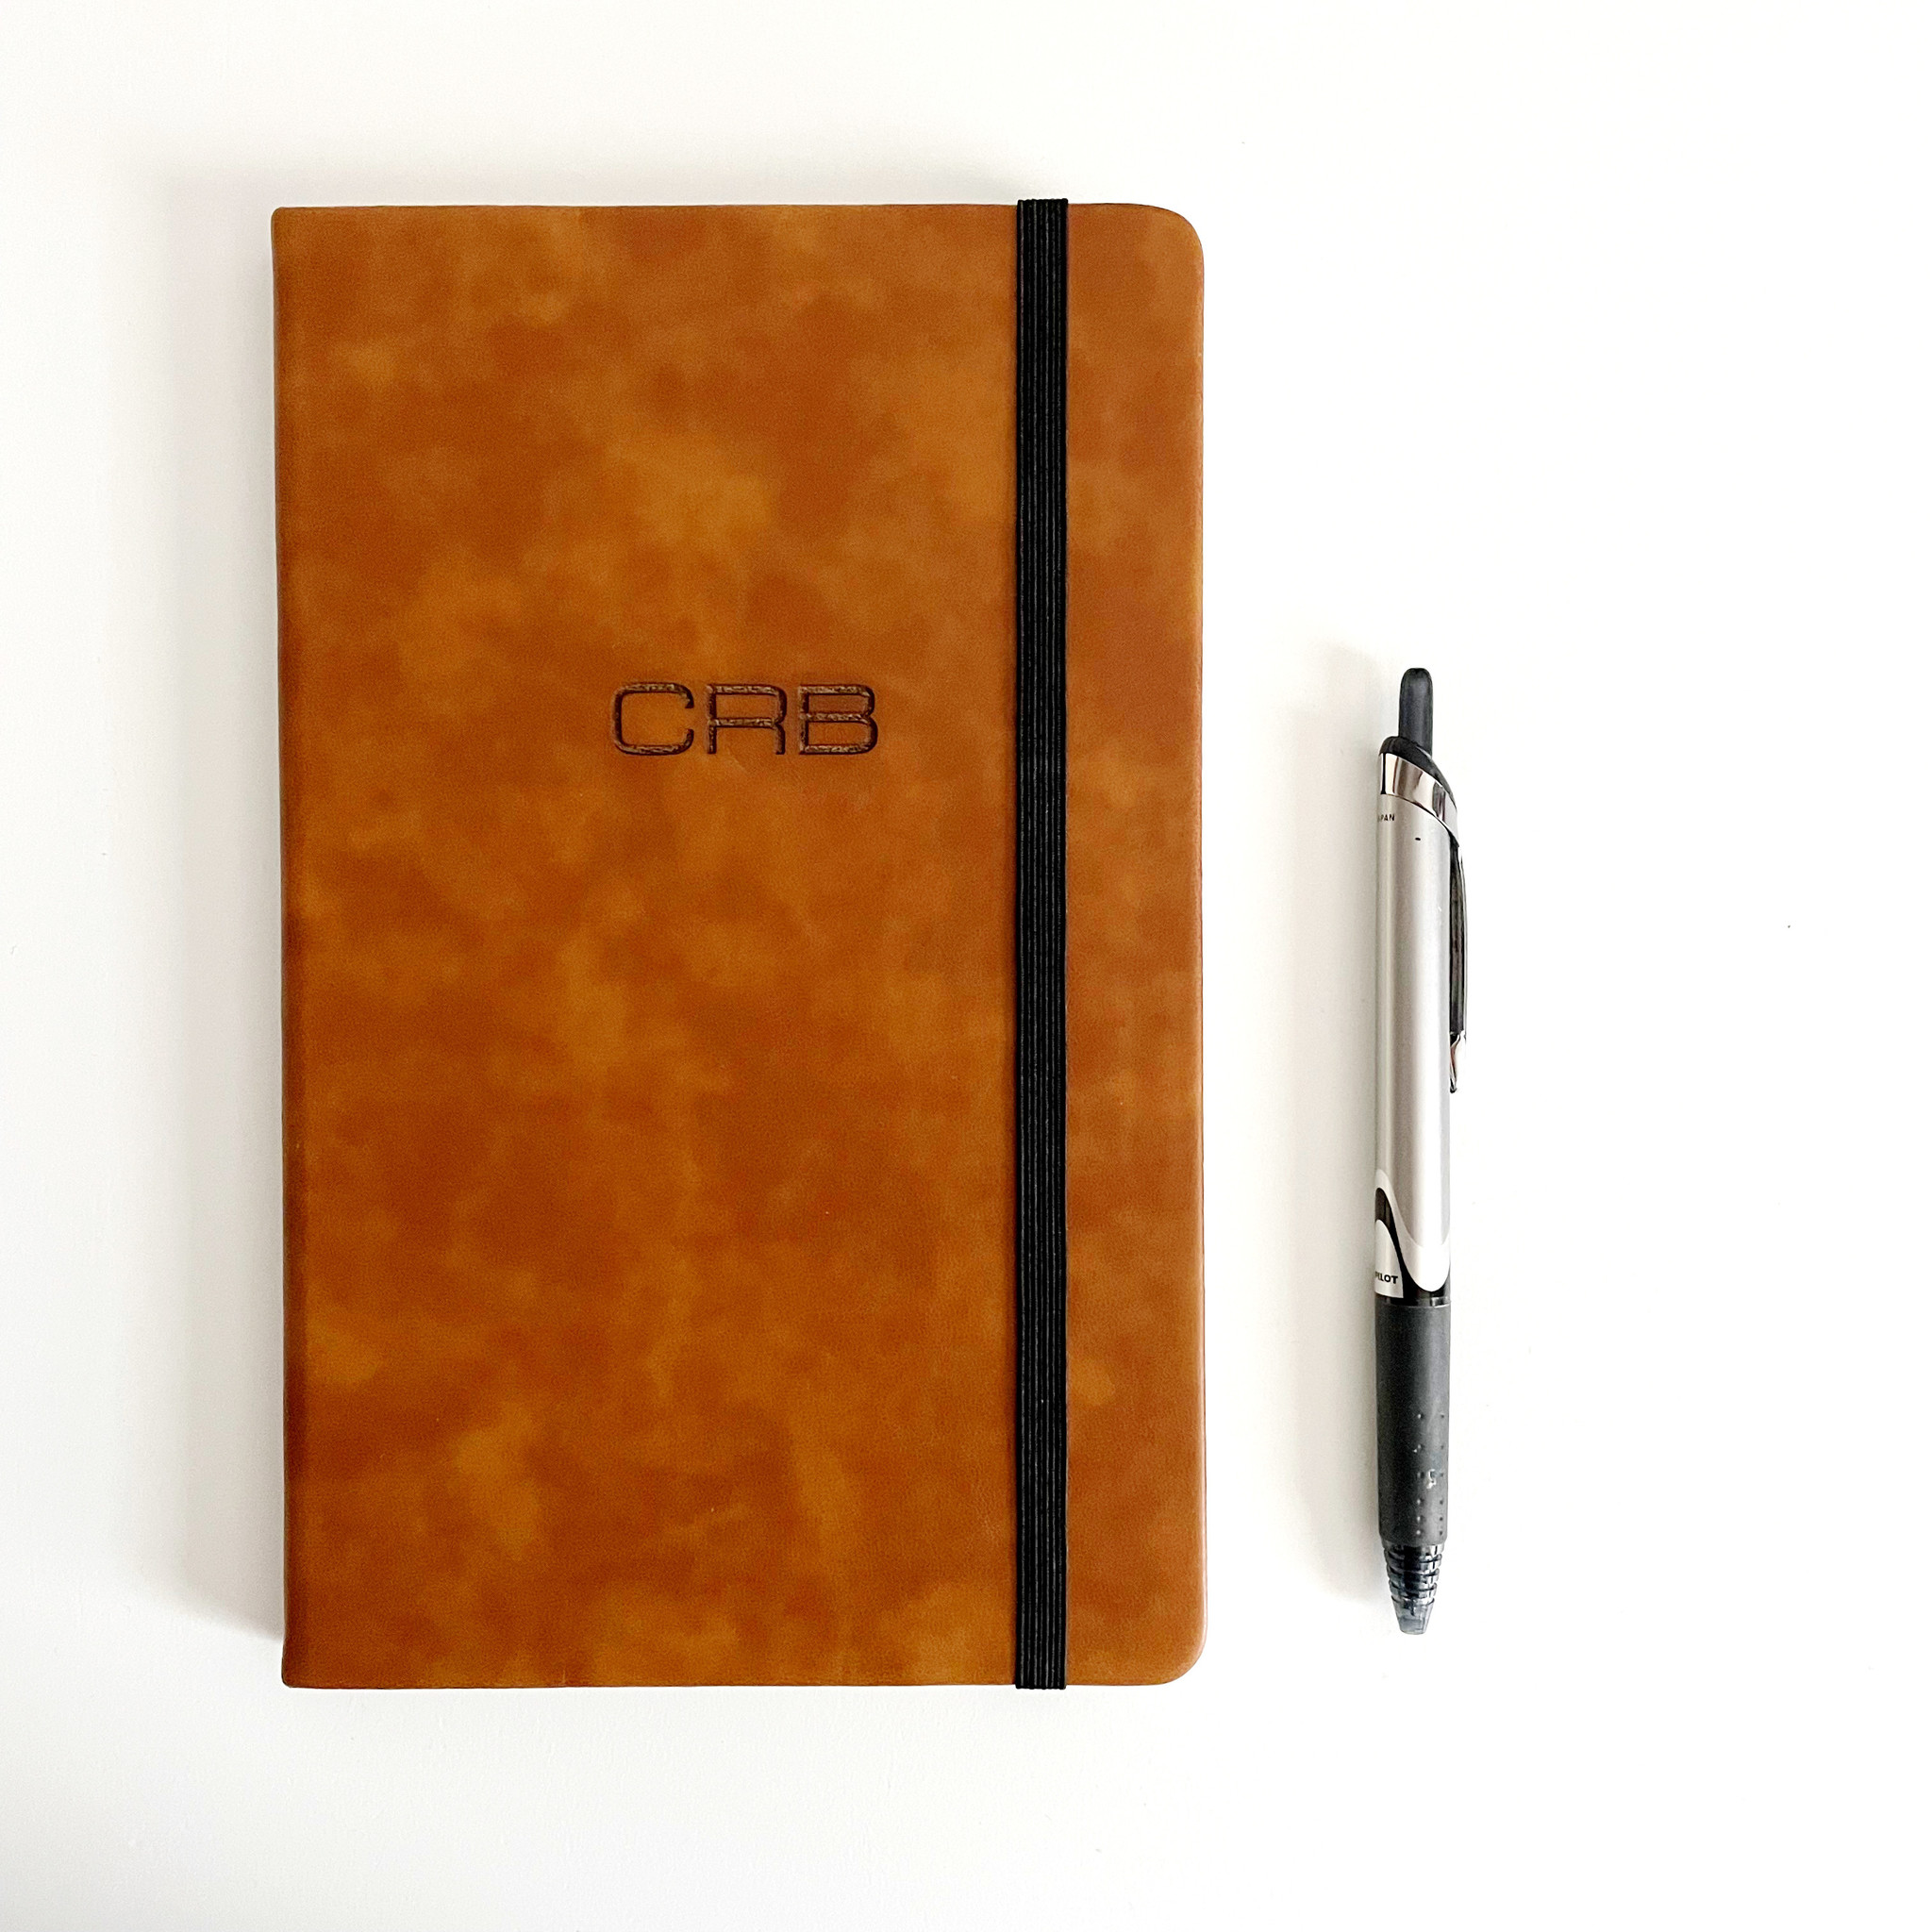 P Graham Dunn Personalized Notebook - Tan - Large